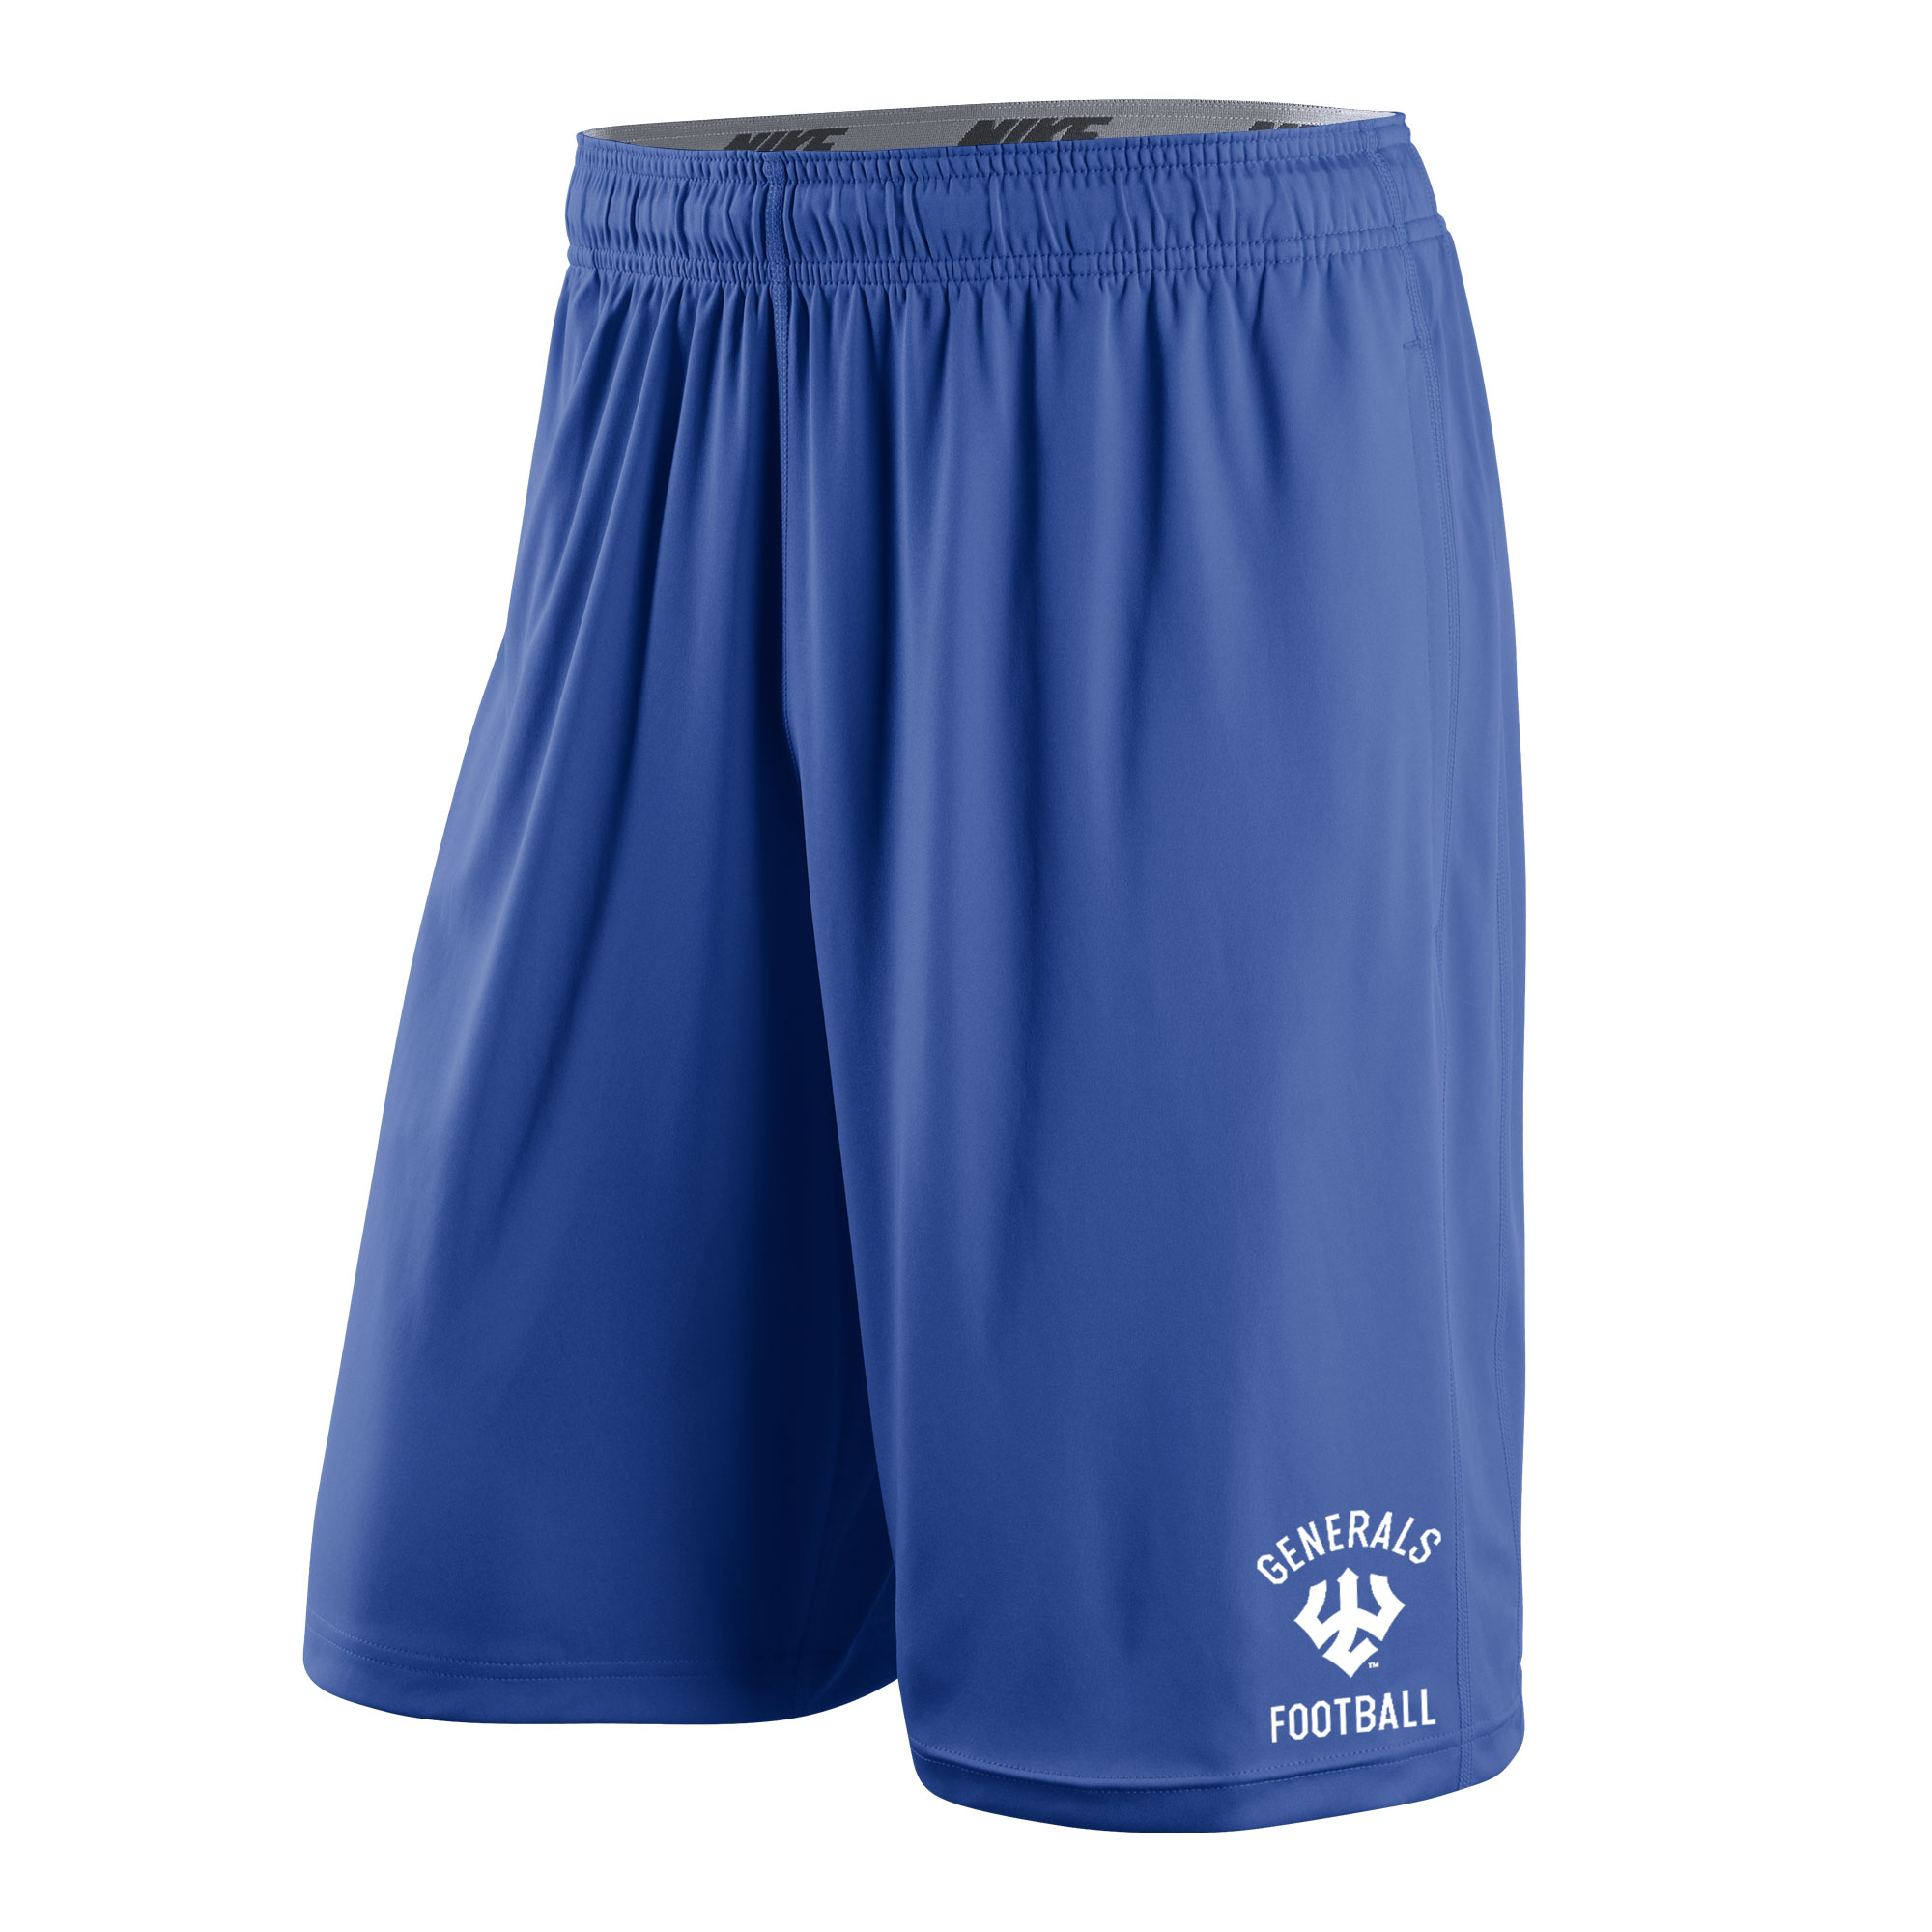 Nike Football Fly Short, Royal